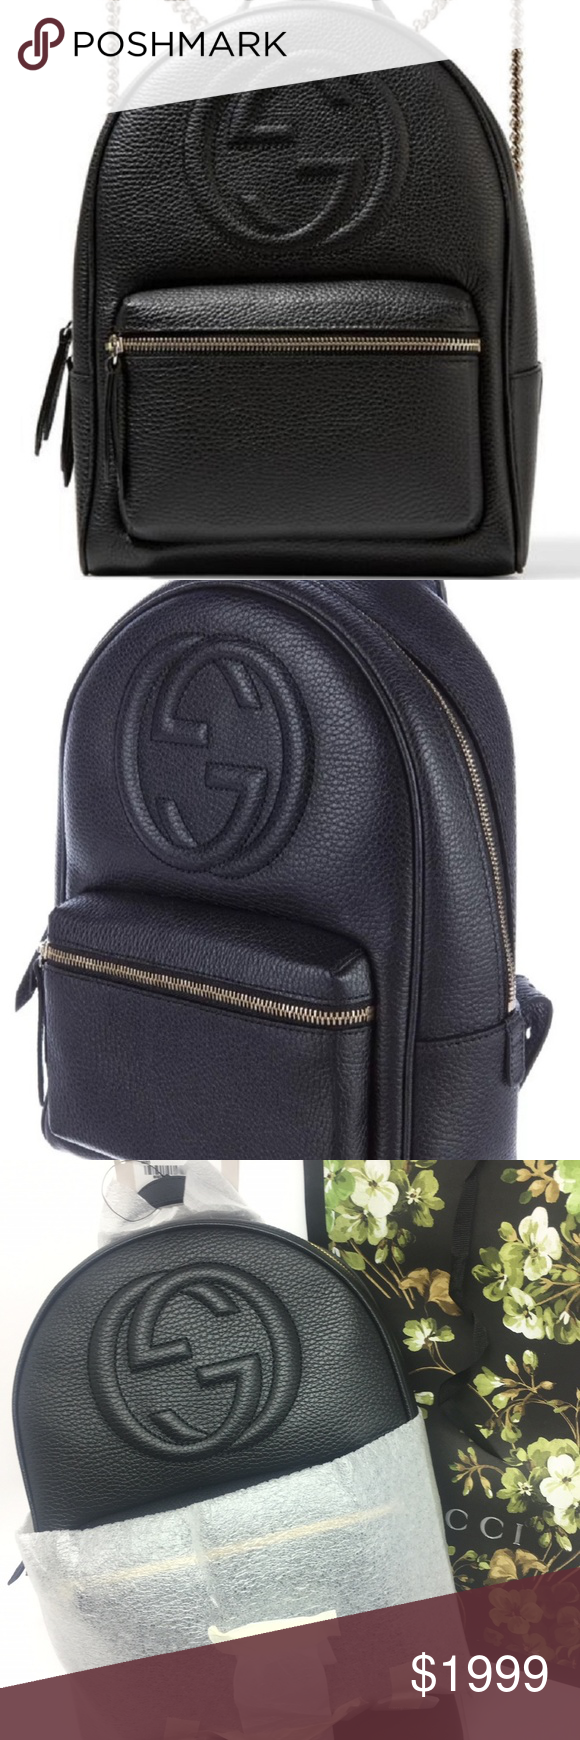 browse latest collections 100% quality big clearance sale Gucci #536192 Soho Leather Gold Chain Backpack - Black ...